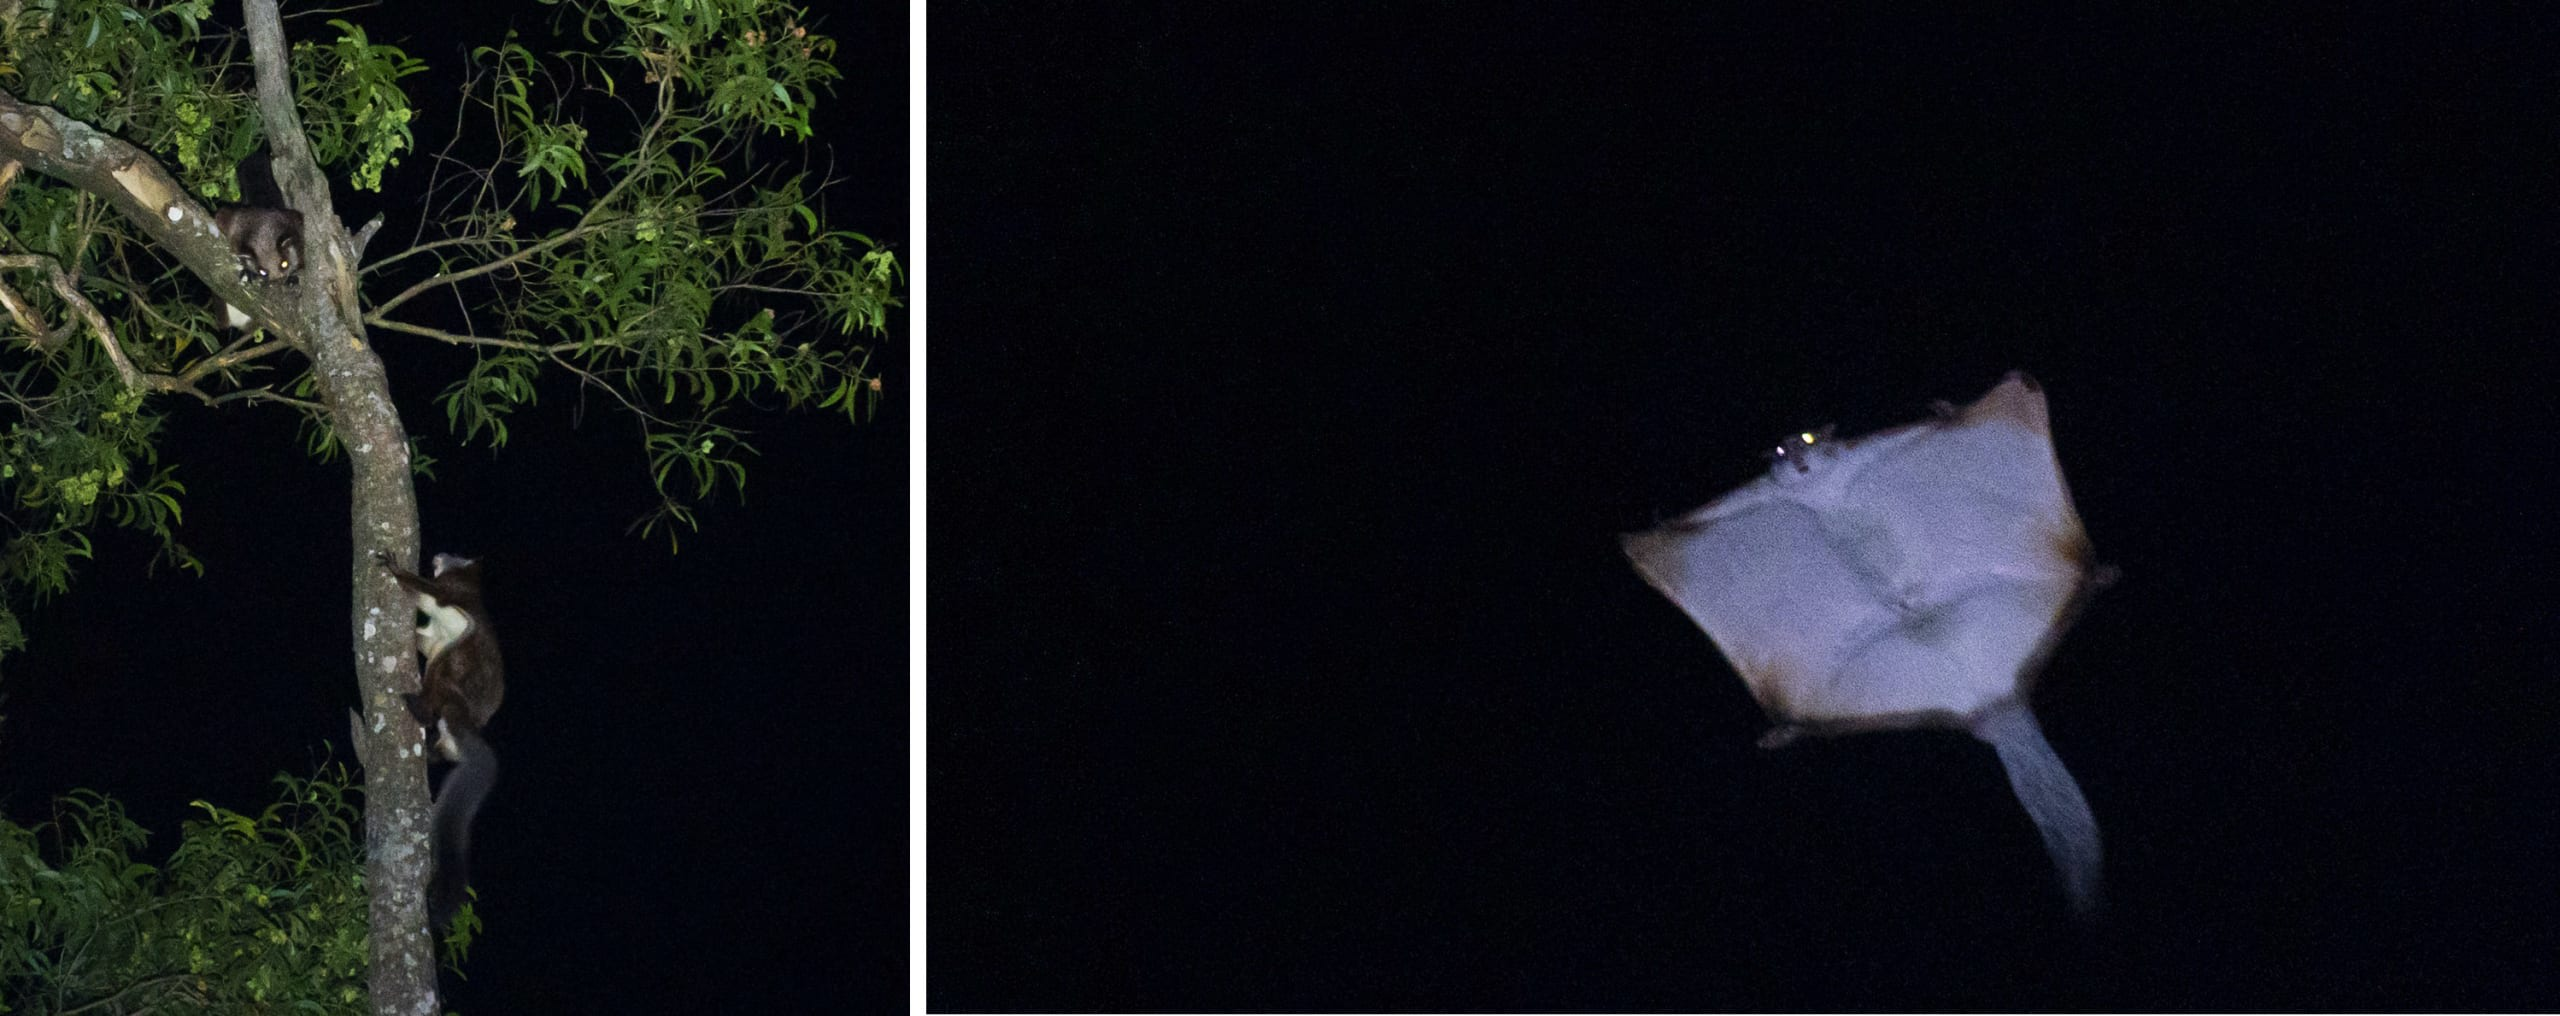 """The red giant squirrel (Petaurista petaurista) is another high-canopy dweller that can be seen after dark. These squirrels have a veil-like membrane between their limbs, which they use to glide from higher points in the canopy to lower branches. The photo on the left shows a male climbing up a tree trunk, while a female waits above. """"The male kept going up and down, up and down, again and again,"""" Mukherjee recalls. """"It looked to me like he was dancing."""""""